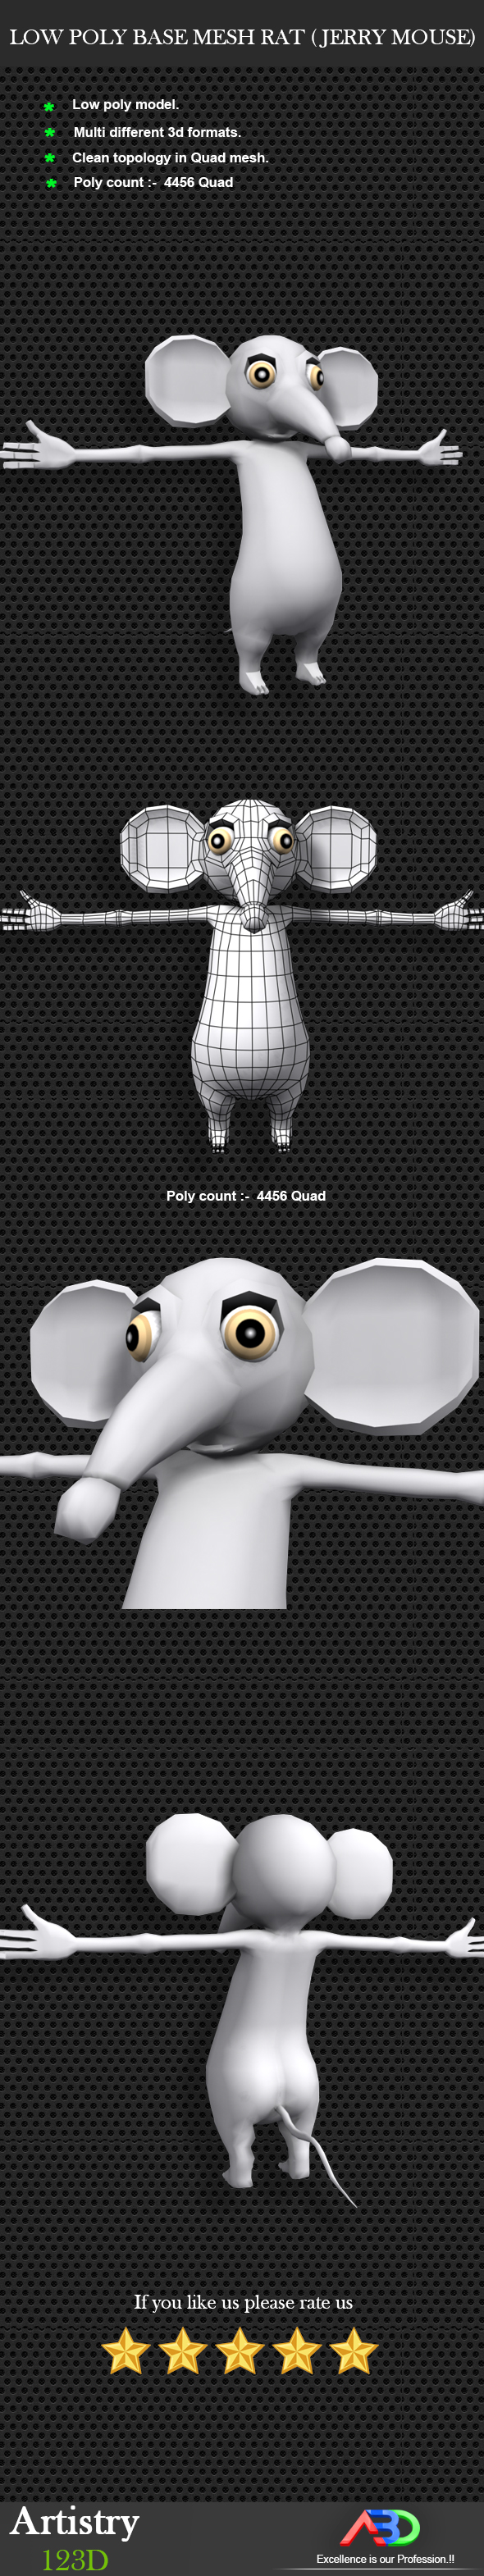 Low Poly Base Mesh RAT ( Jerry mouse) - 3DOcean Item for Sale